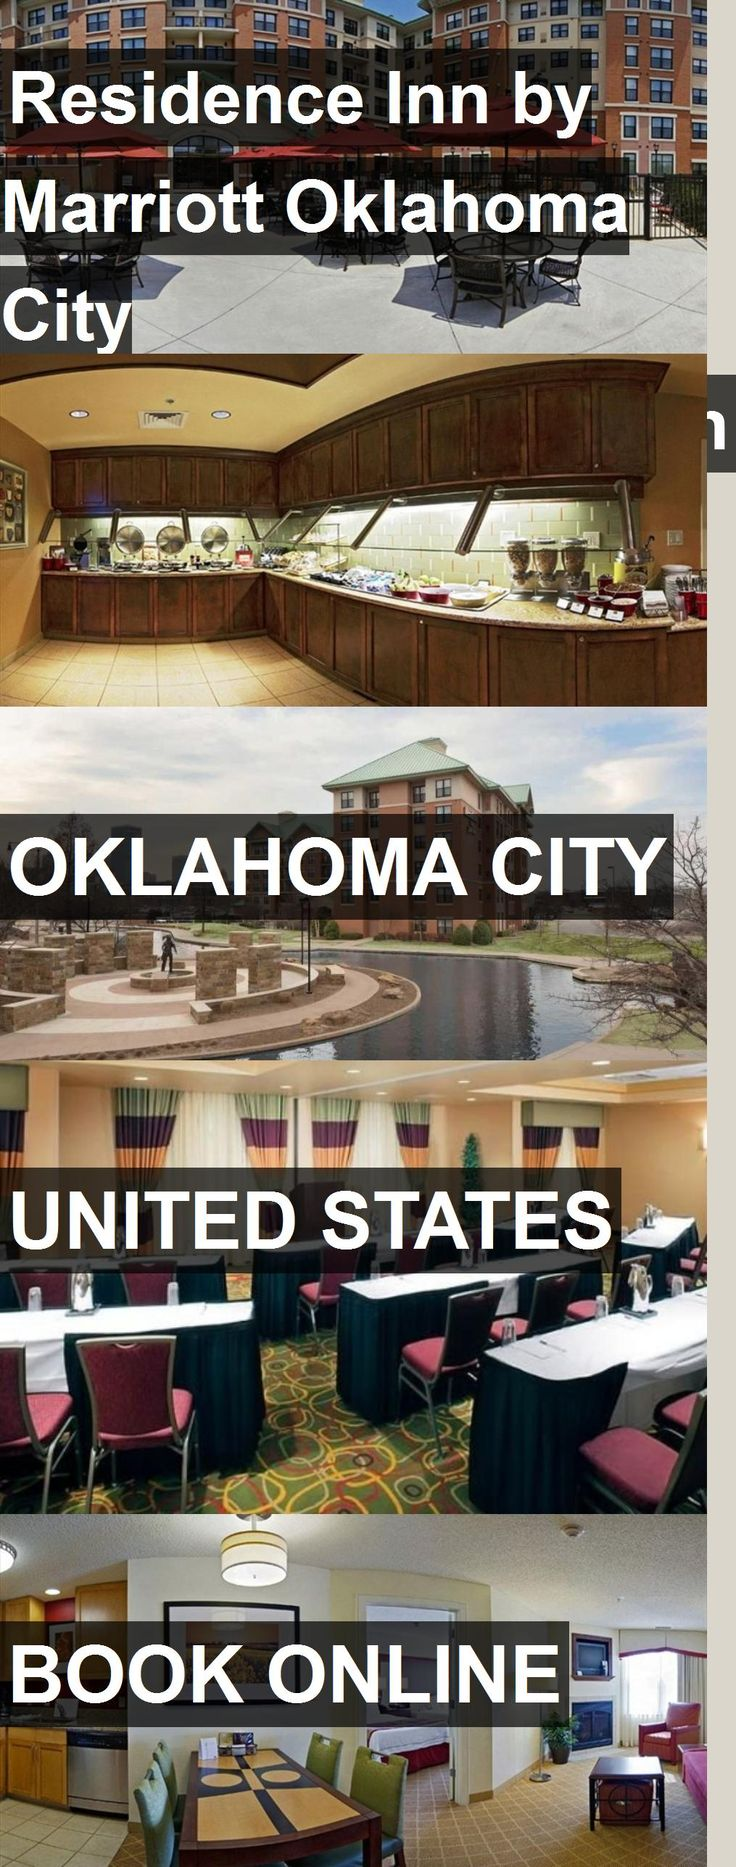 Hotel Residence Inn by Marriott Oklahoma City Downtown/Bricktown in Oklahoma City, United States. For more information, photos, reviews and best prices please follow the link. #UnitedStates #OklahomaCity #hotel #travel #vacation